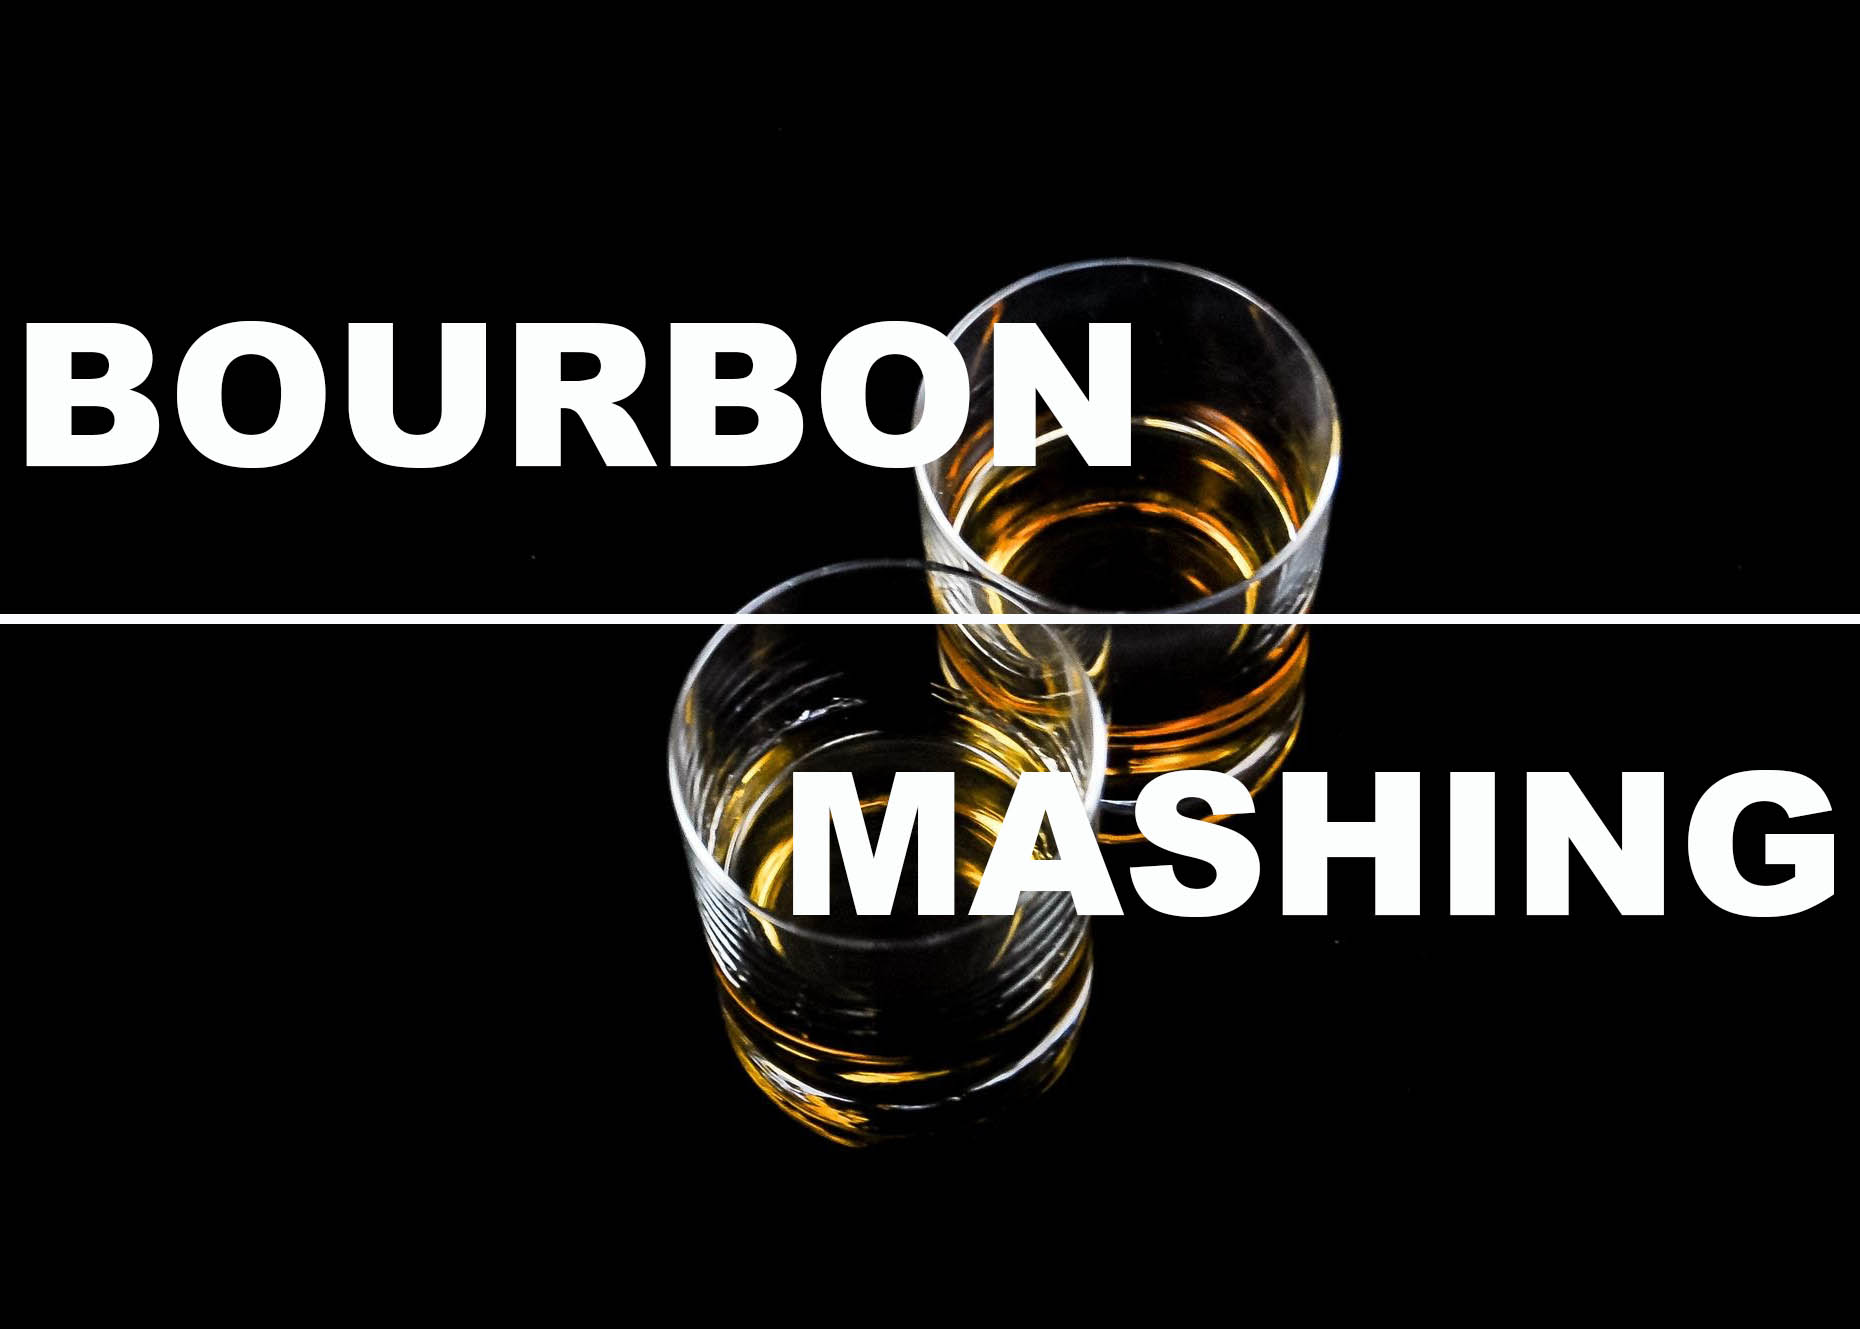 Bourbon Mashing logo